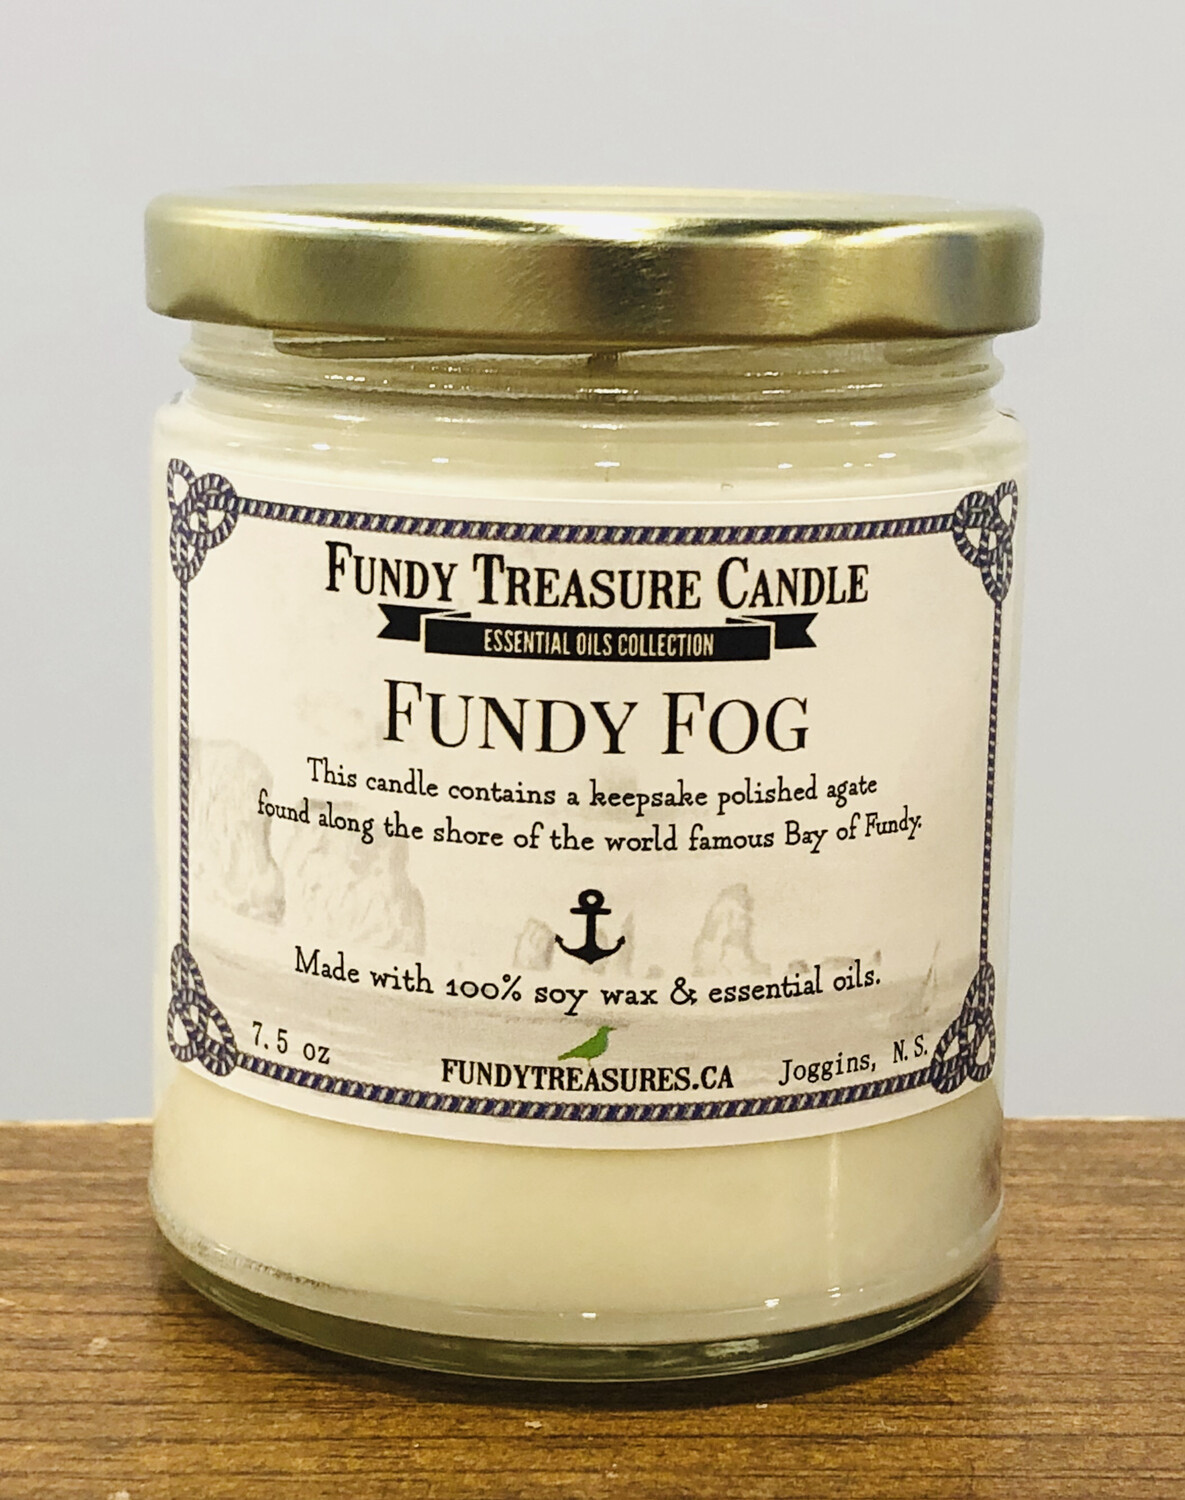 Fundy Fog Candle (essential oil collection)